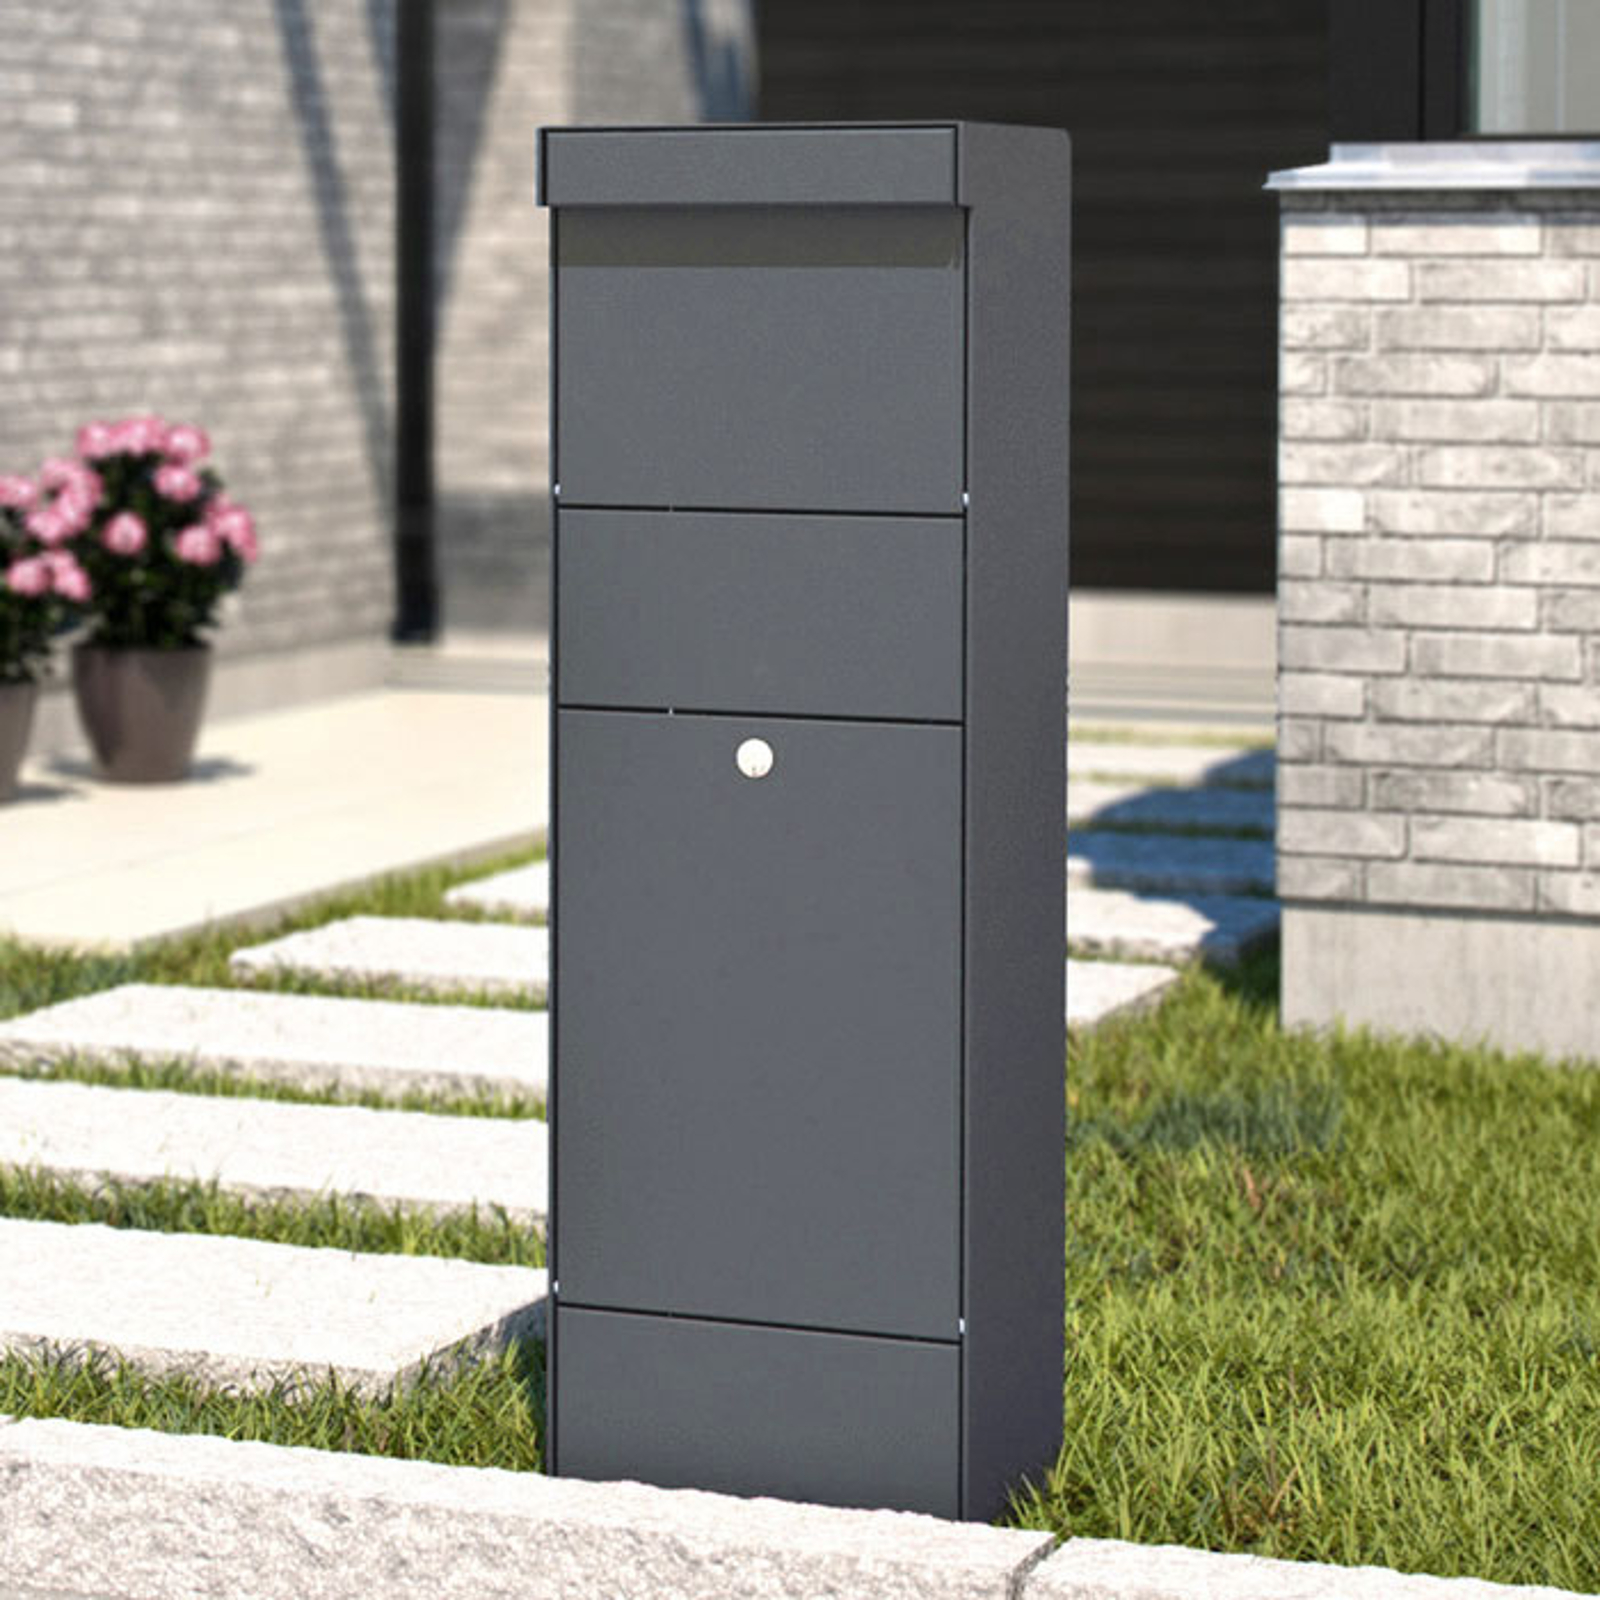 Stand letterbox Parcel anthracite_1045224_1